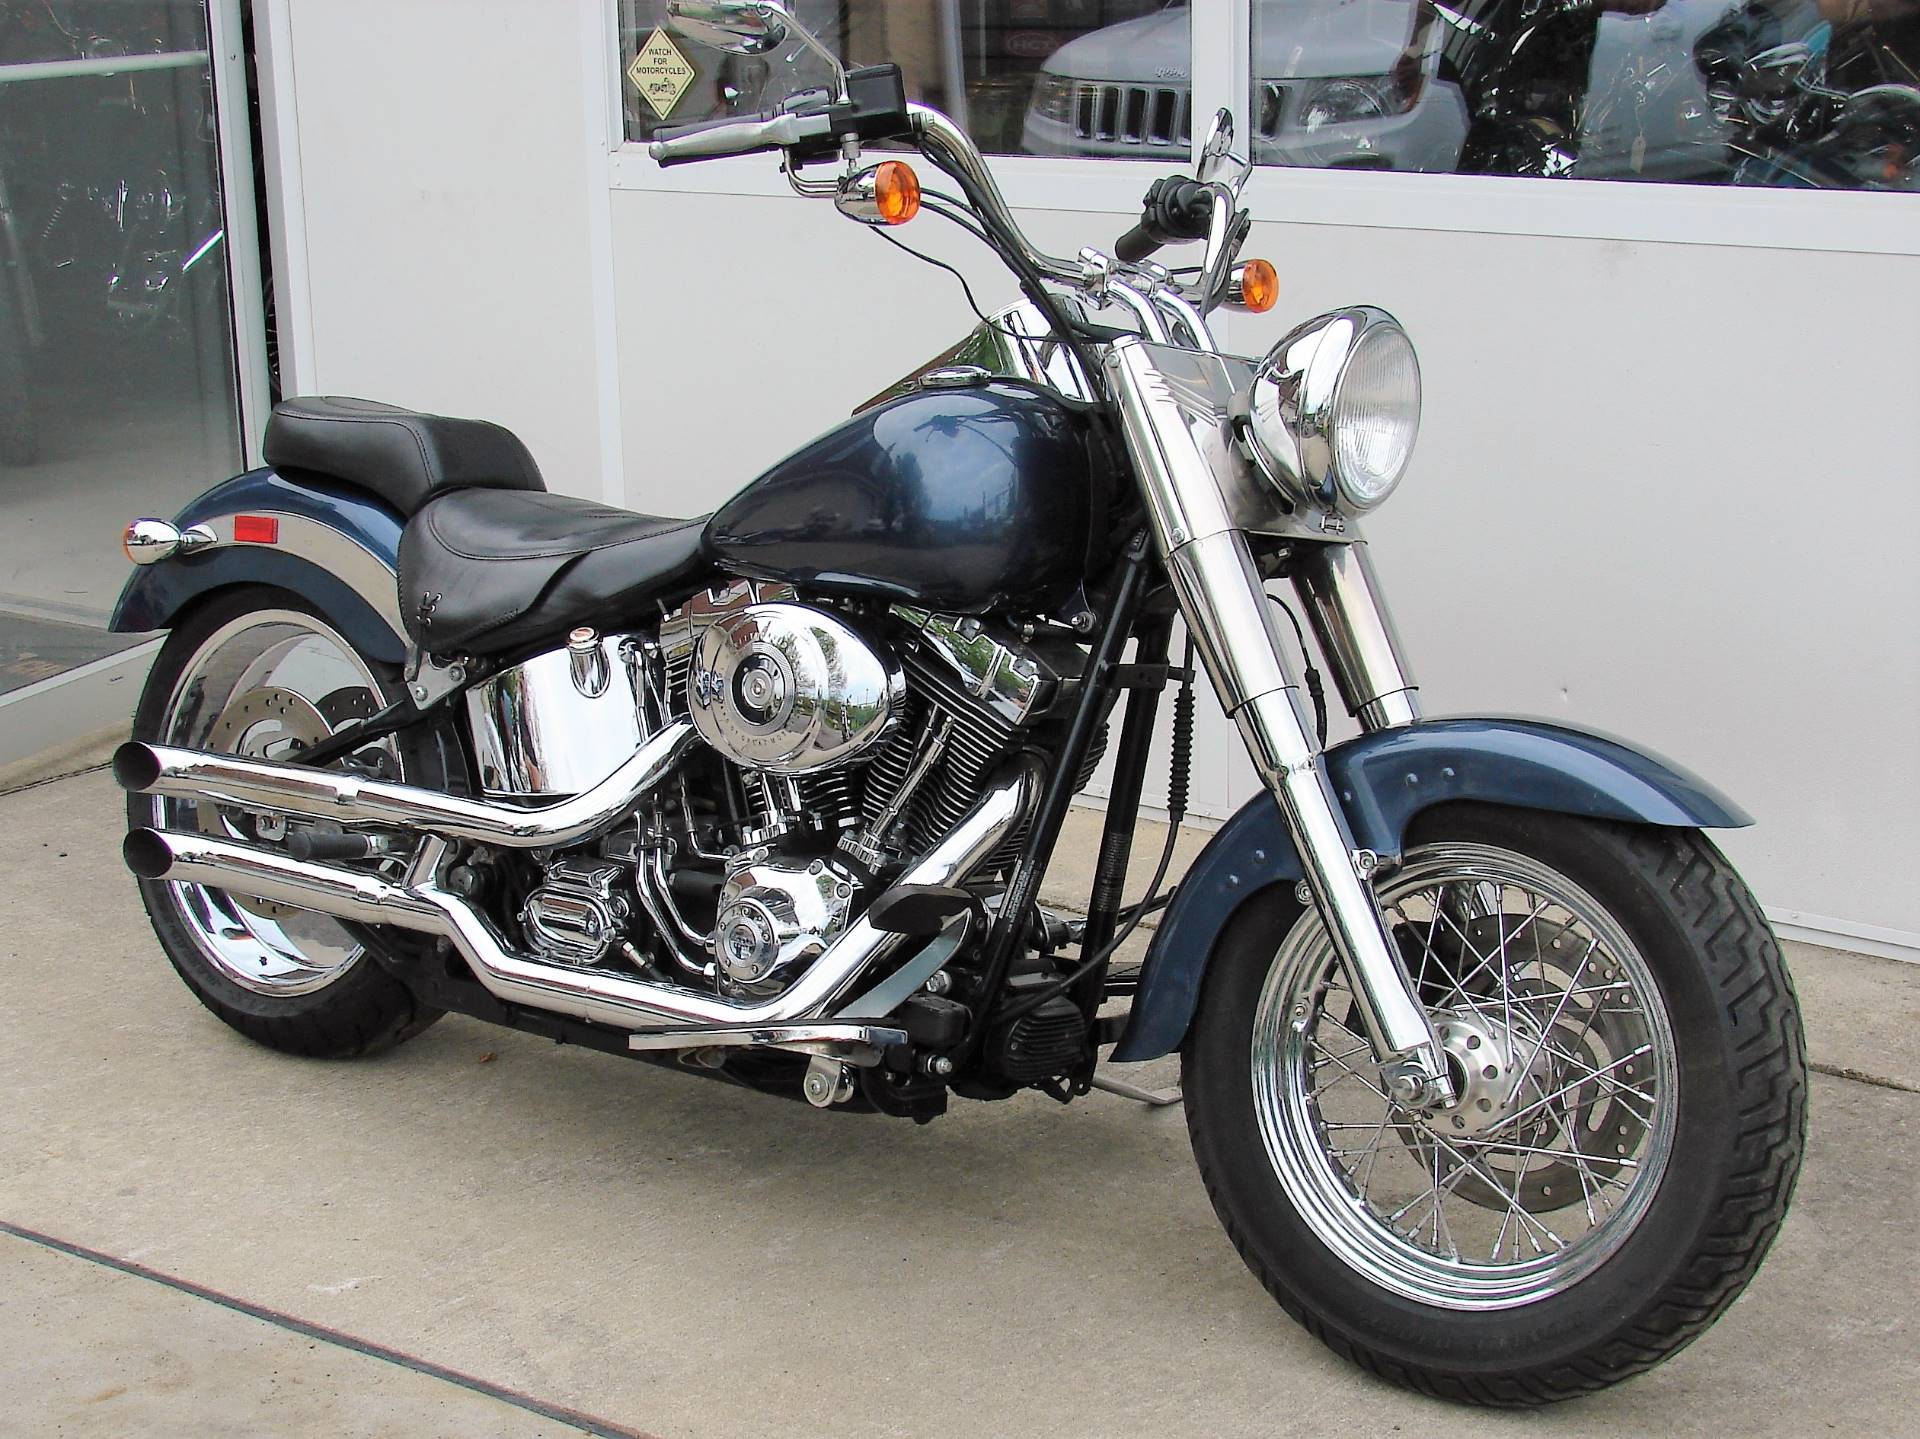 2003 Harley-Davidson Heritage Softail / Fatboy in Williamstown, New Jersey - Photo 10